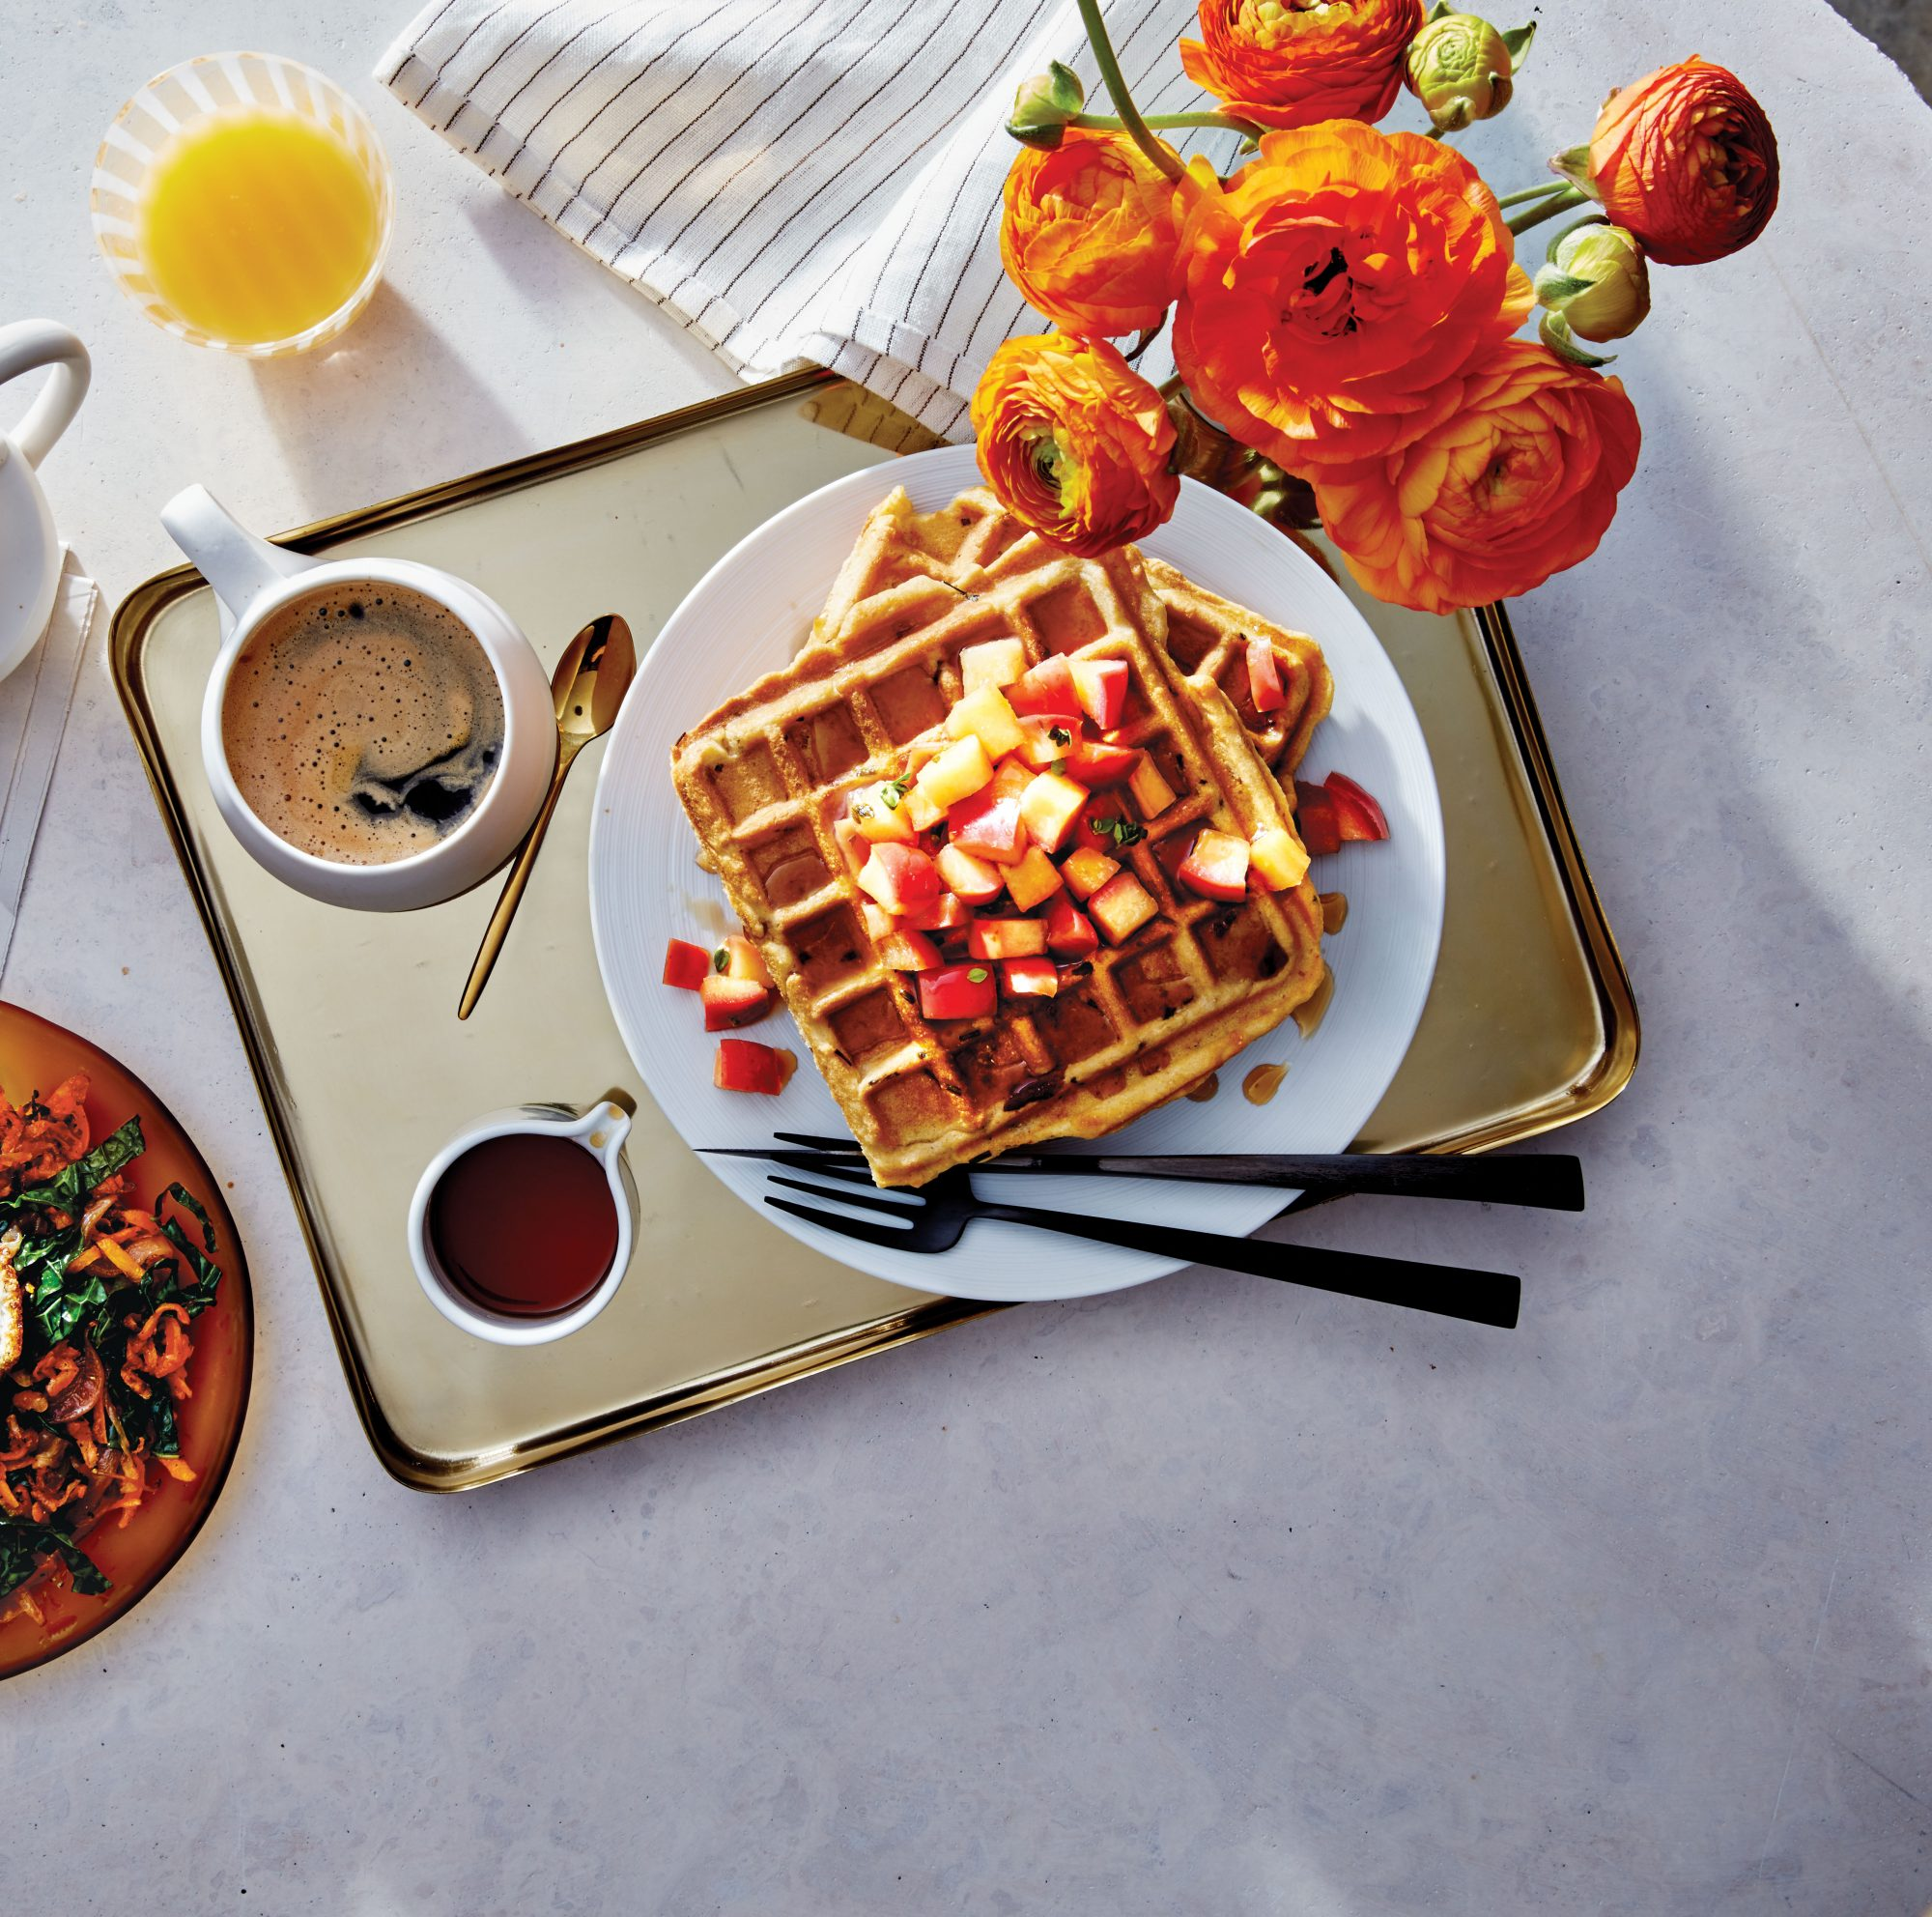 bacon-stuffed-waffles-fruit-brunch-recipe